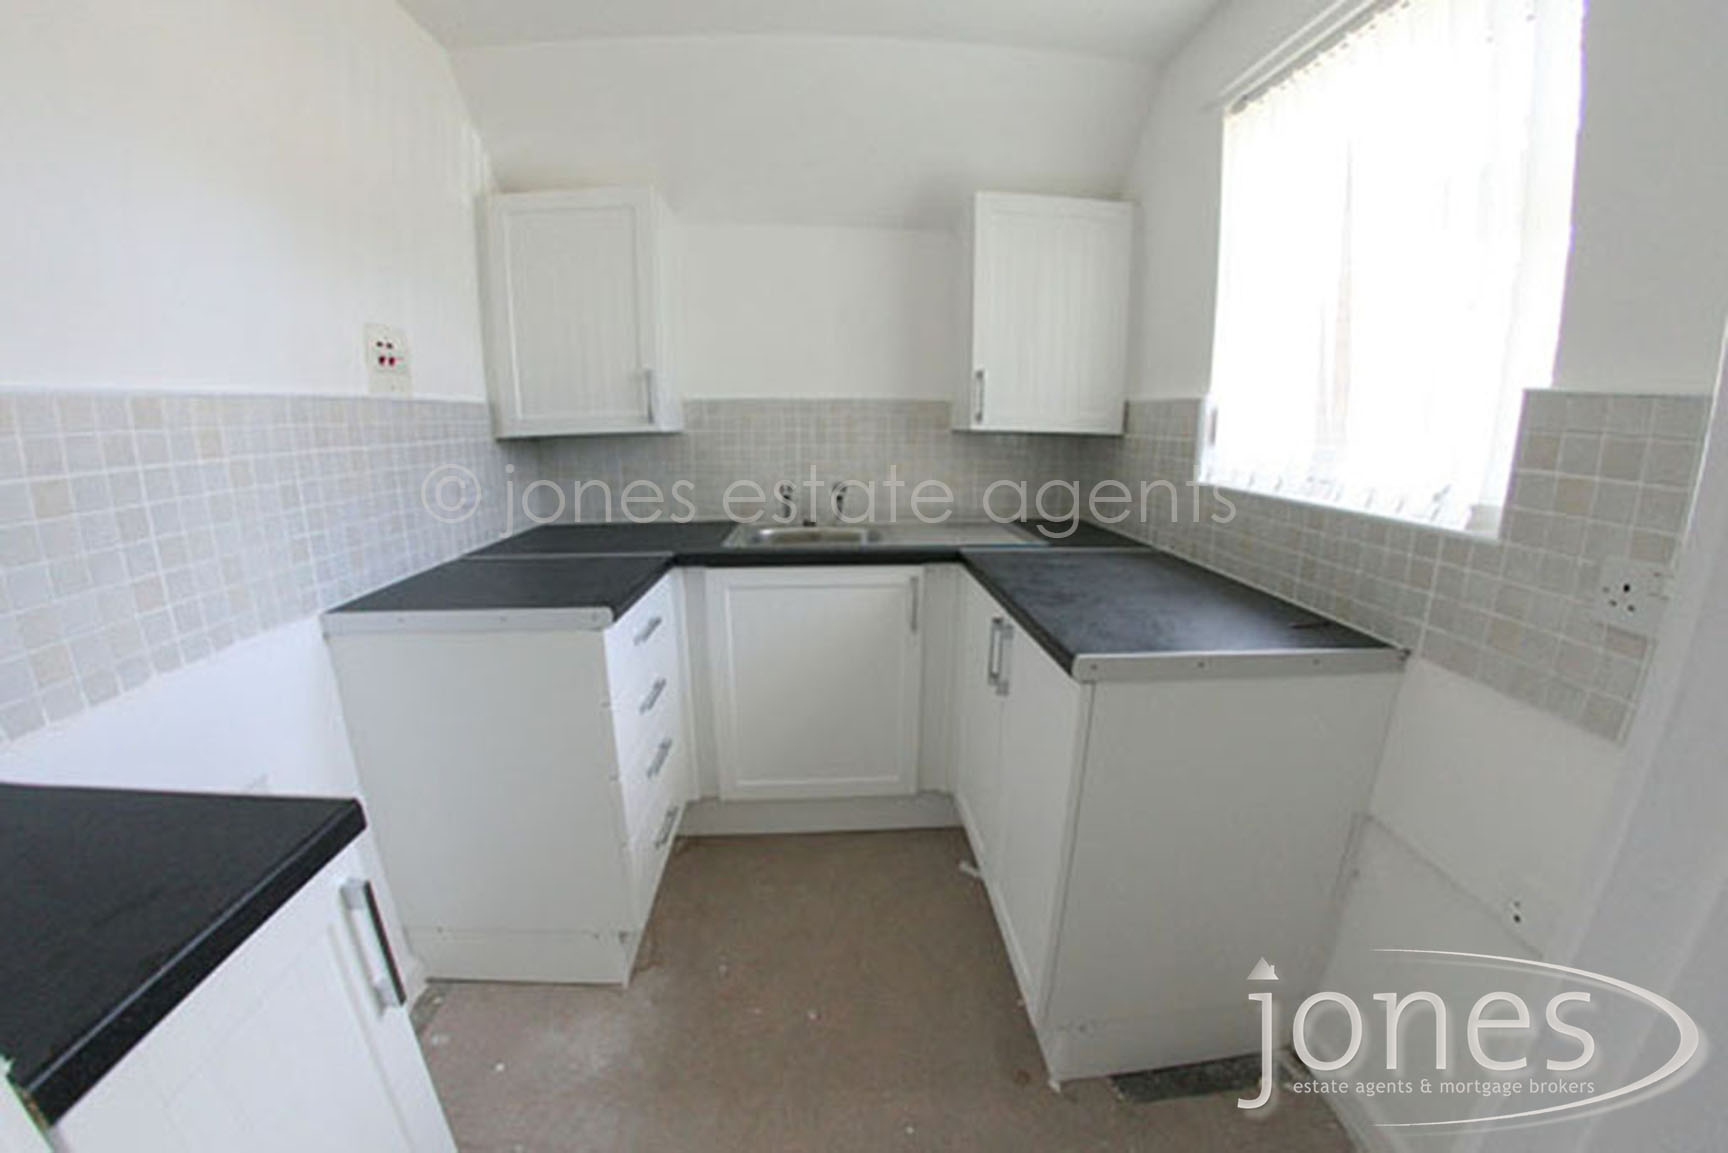 Home for Sale Let - Photo 03 GALLEYSFIELDS COURT, The Headland, Hartlepool, TS24 0NB